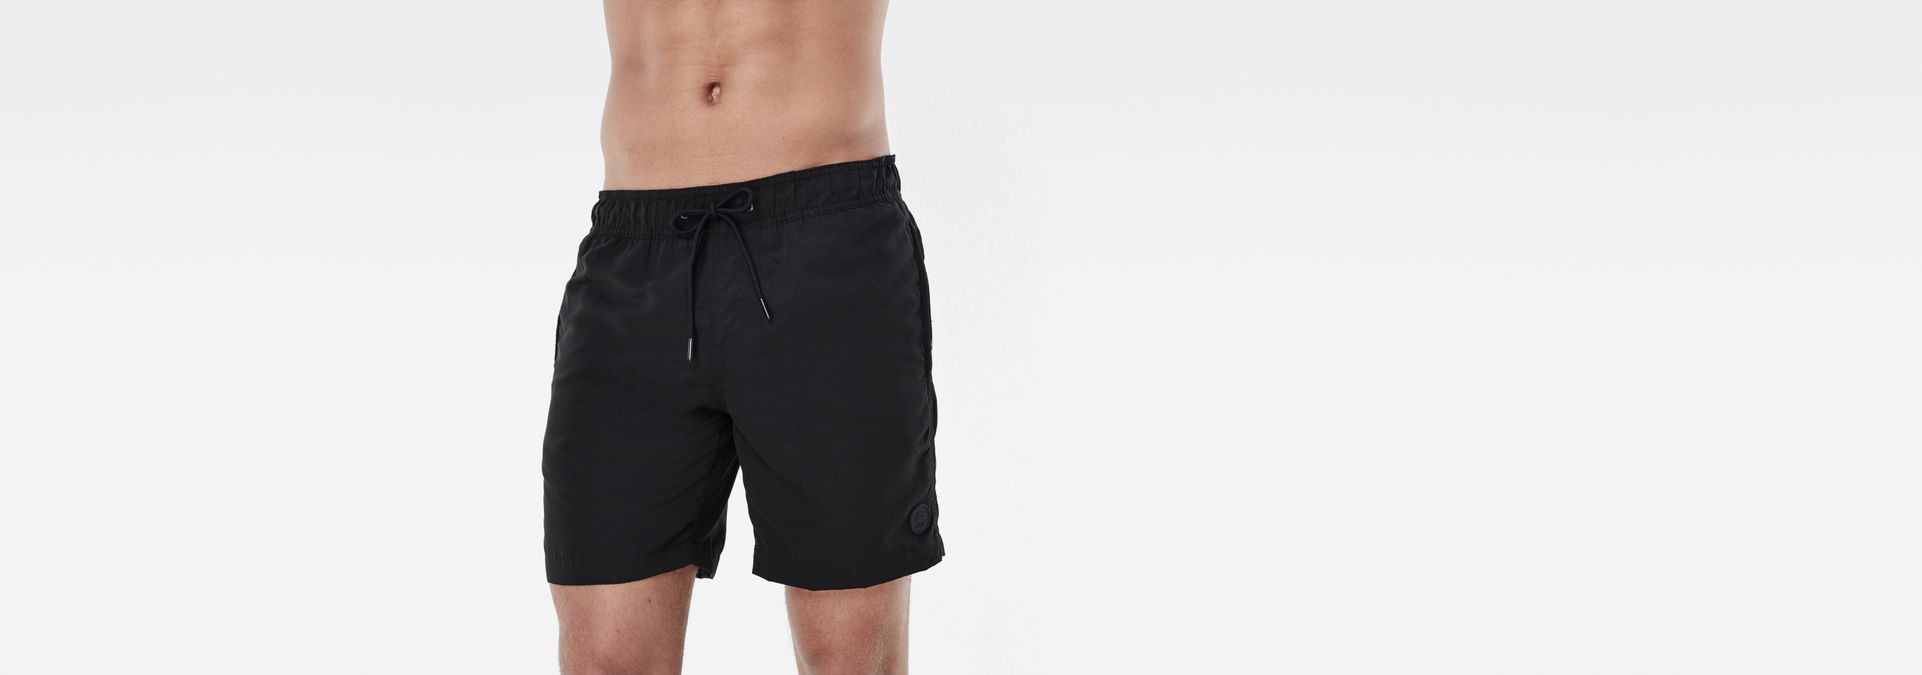 dirik art swimshorts black men sale g star raw. Black Bedroom Furniture Sets. Home Design Ideas